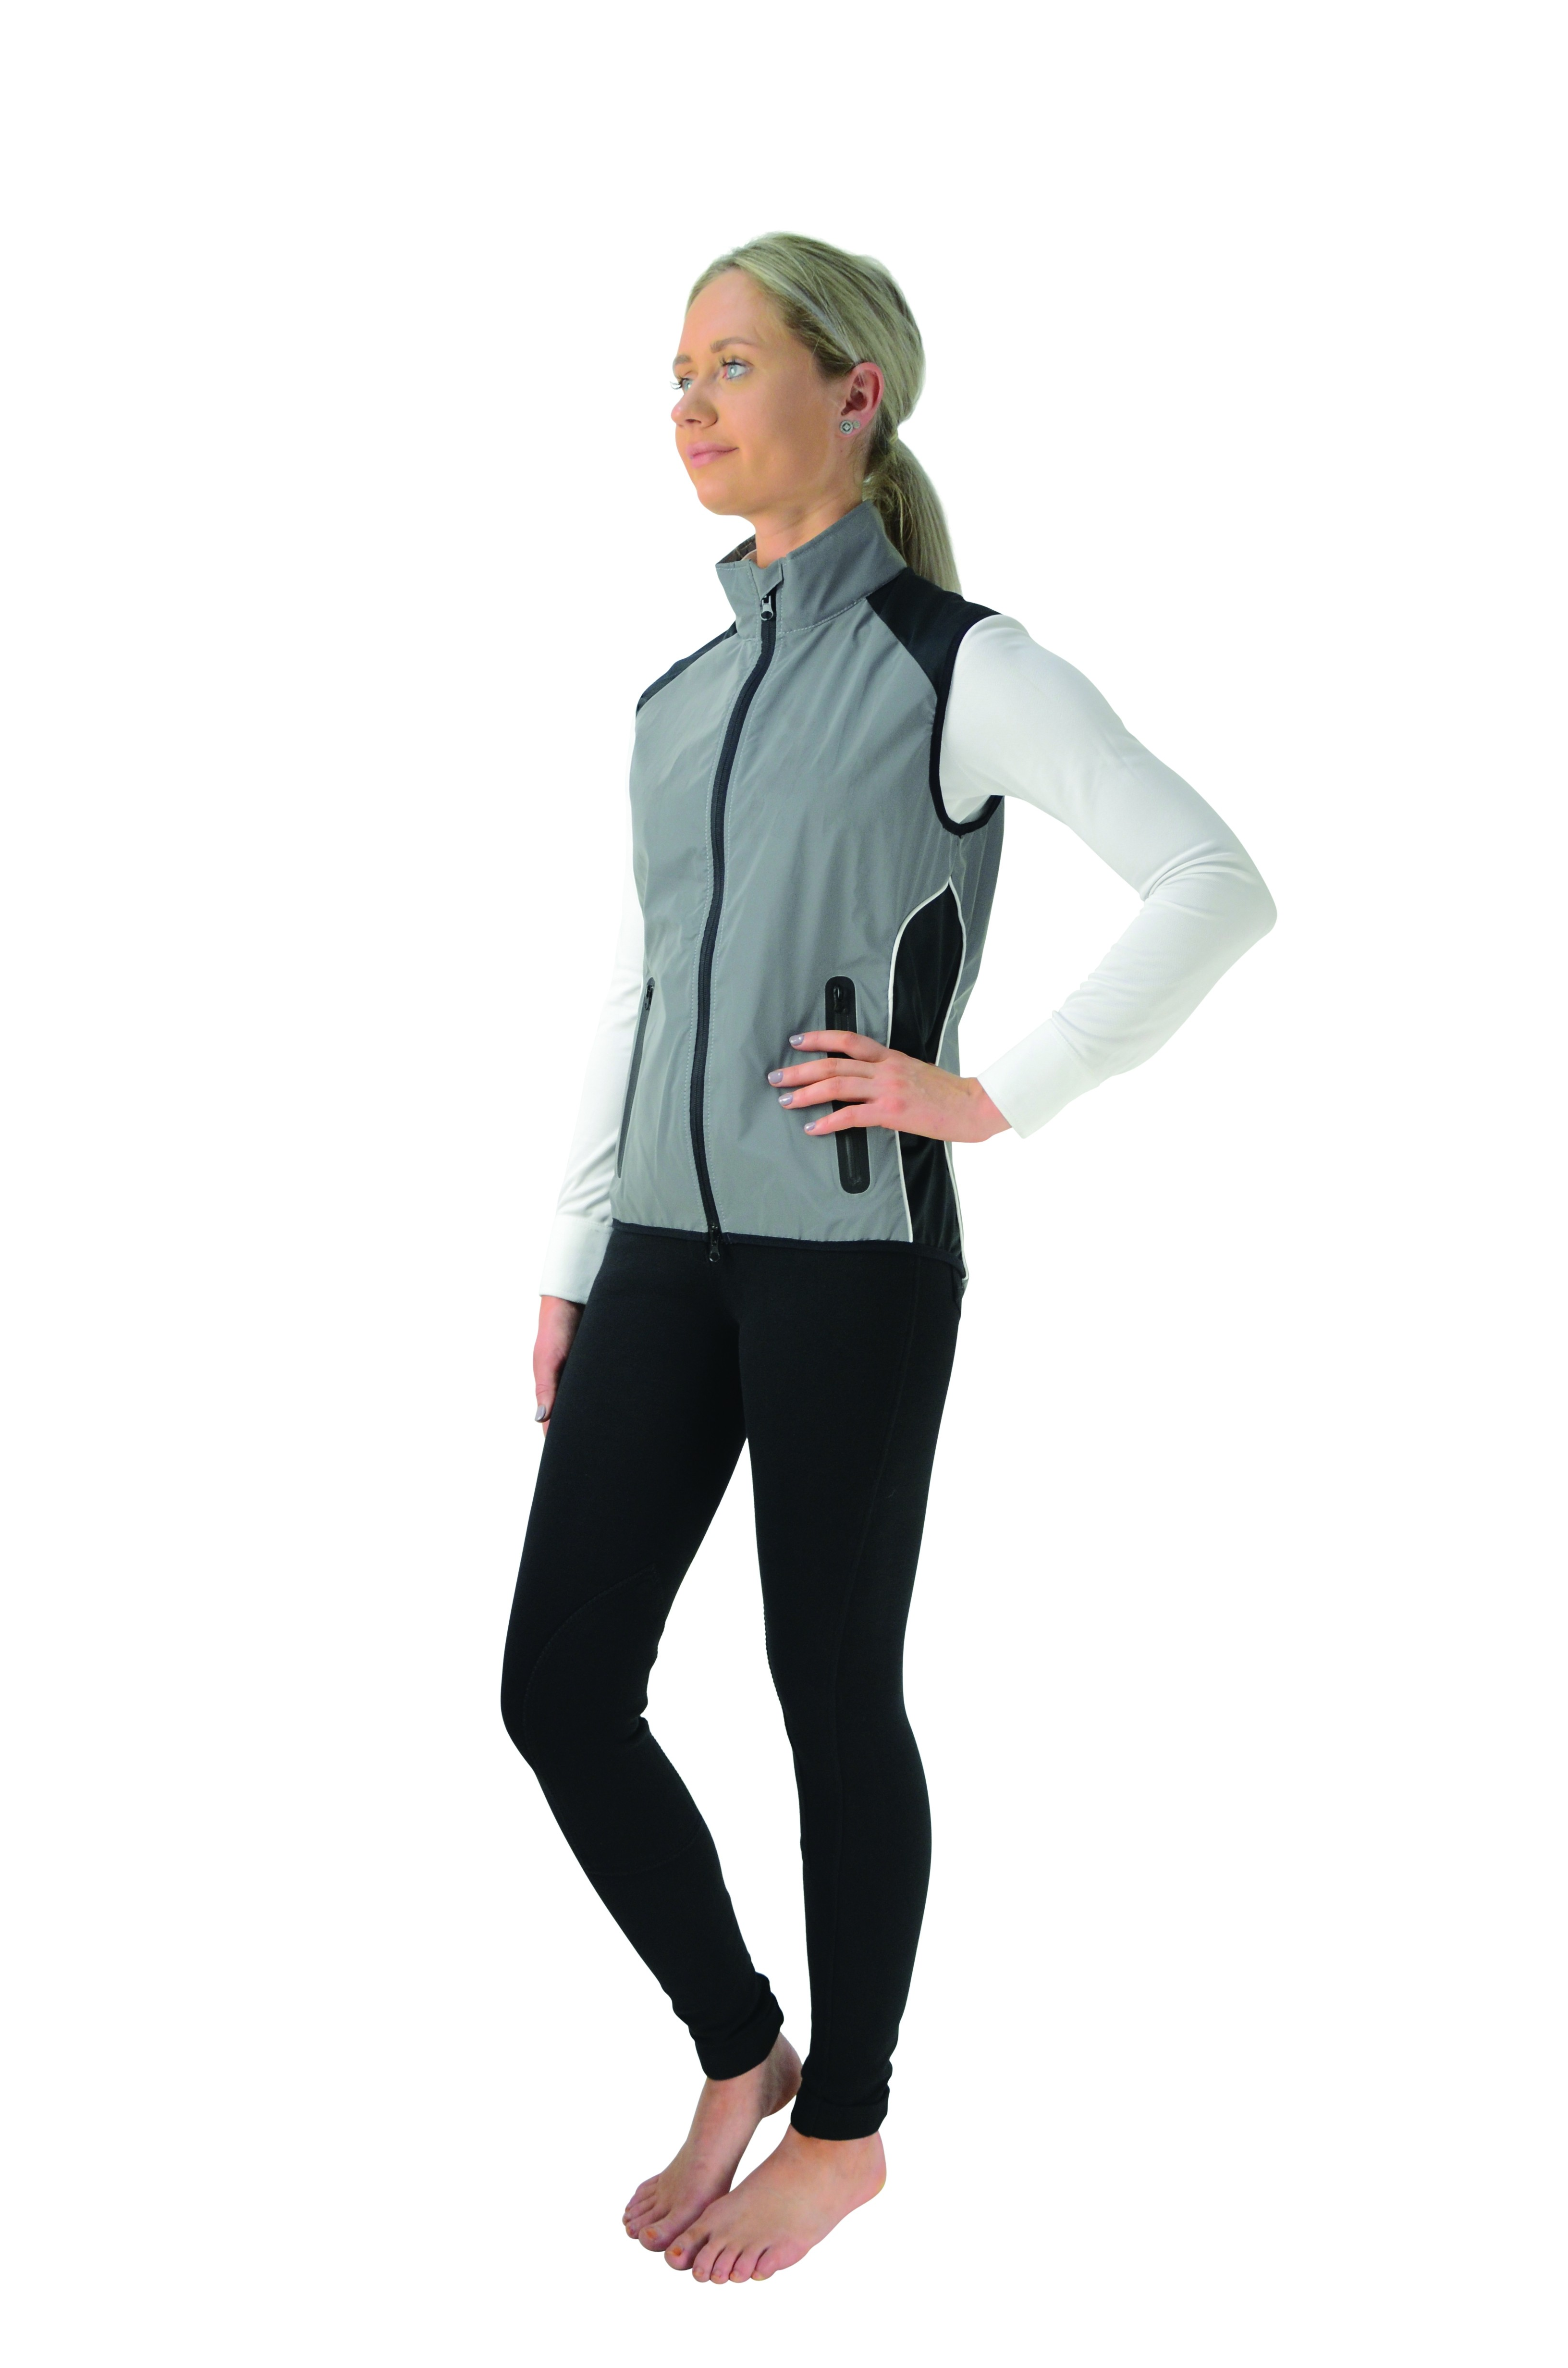 HyViz Silva Mercury Reflective Gilet  - Thomas Irving's equestrian and accessories store  HyViz Silva Flash Reflective Gilet